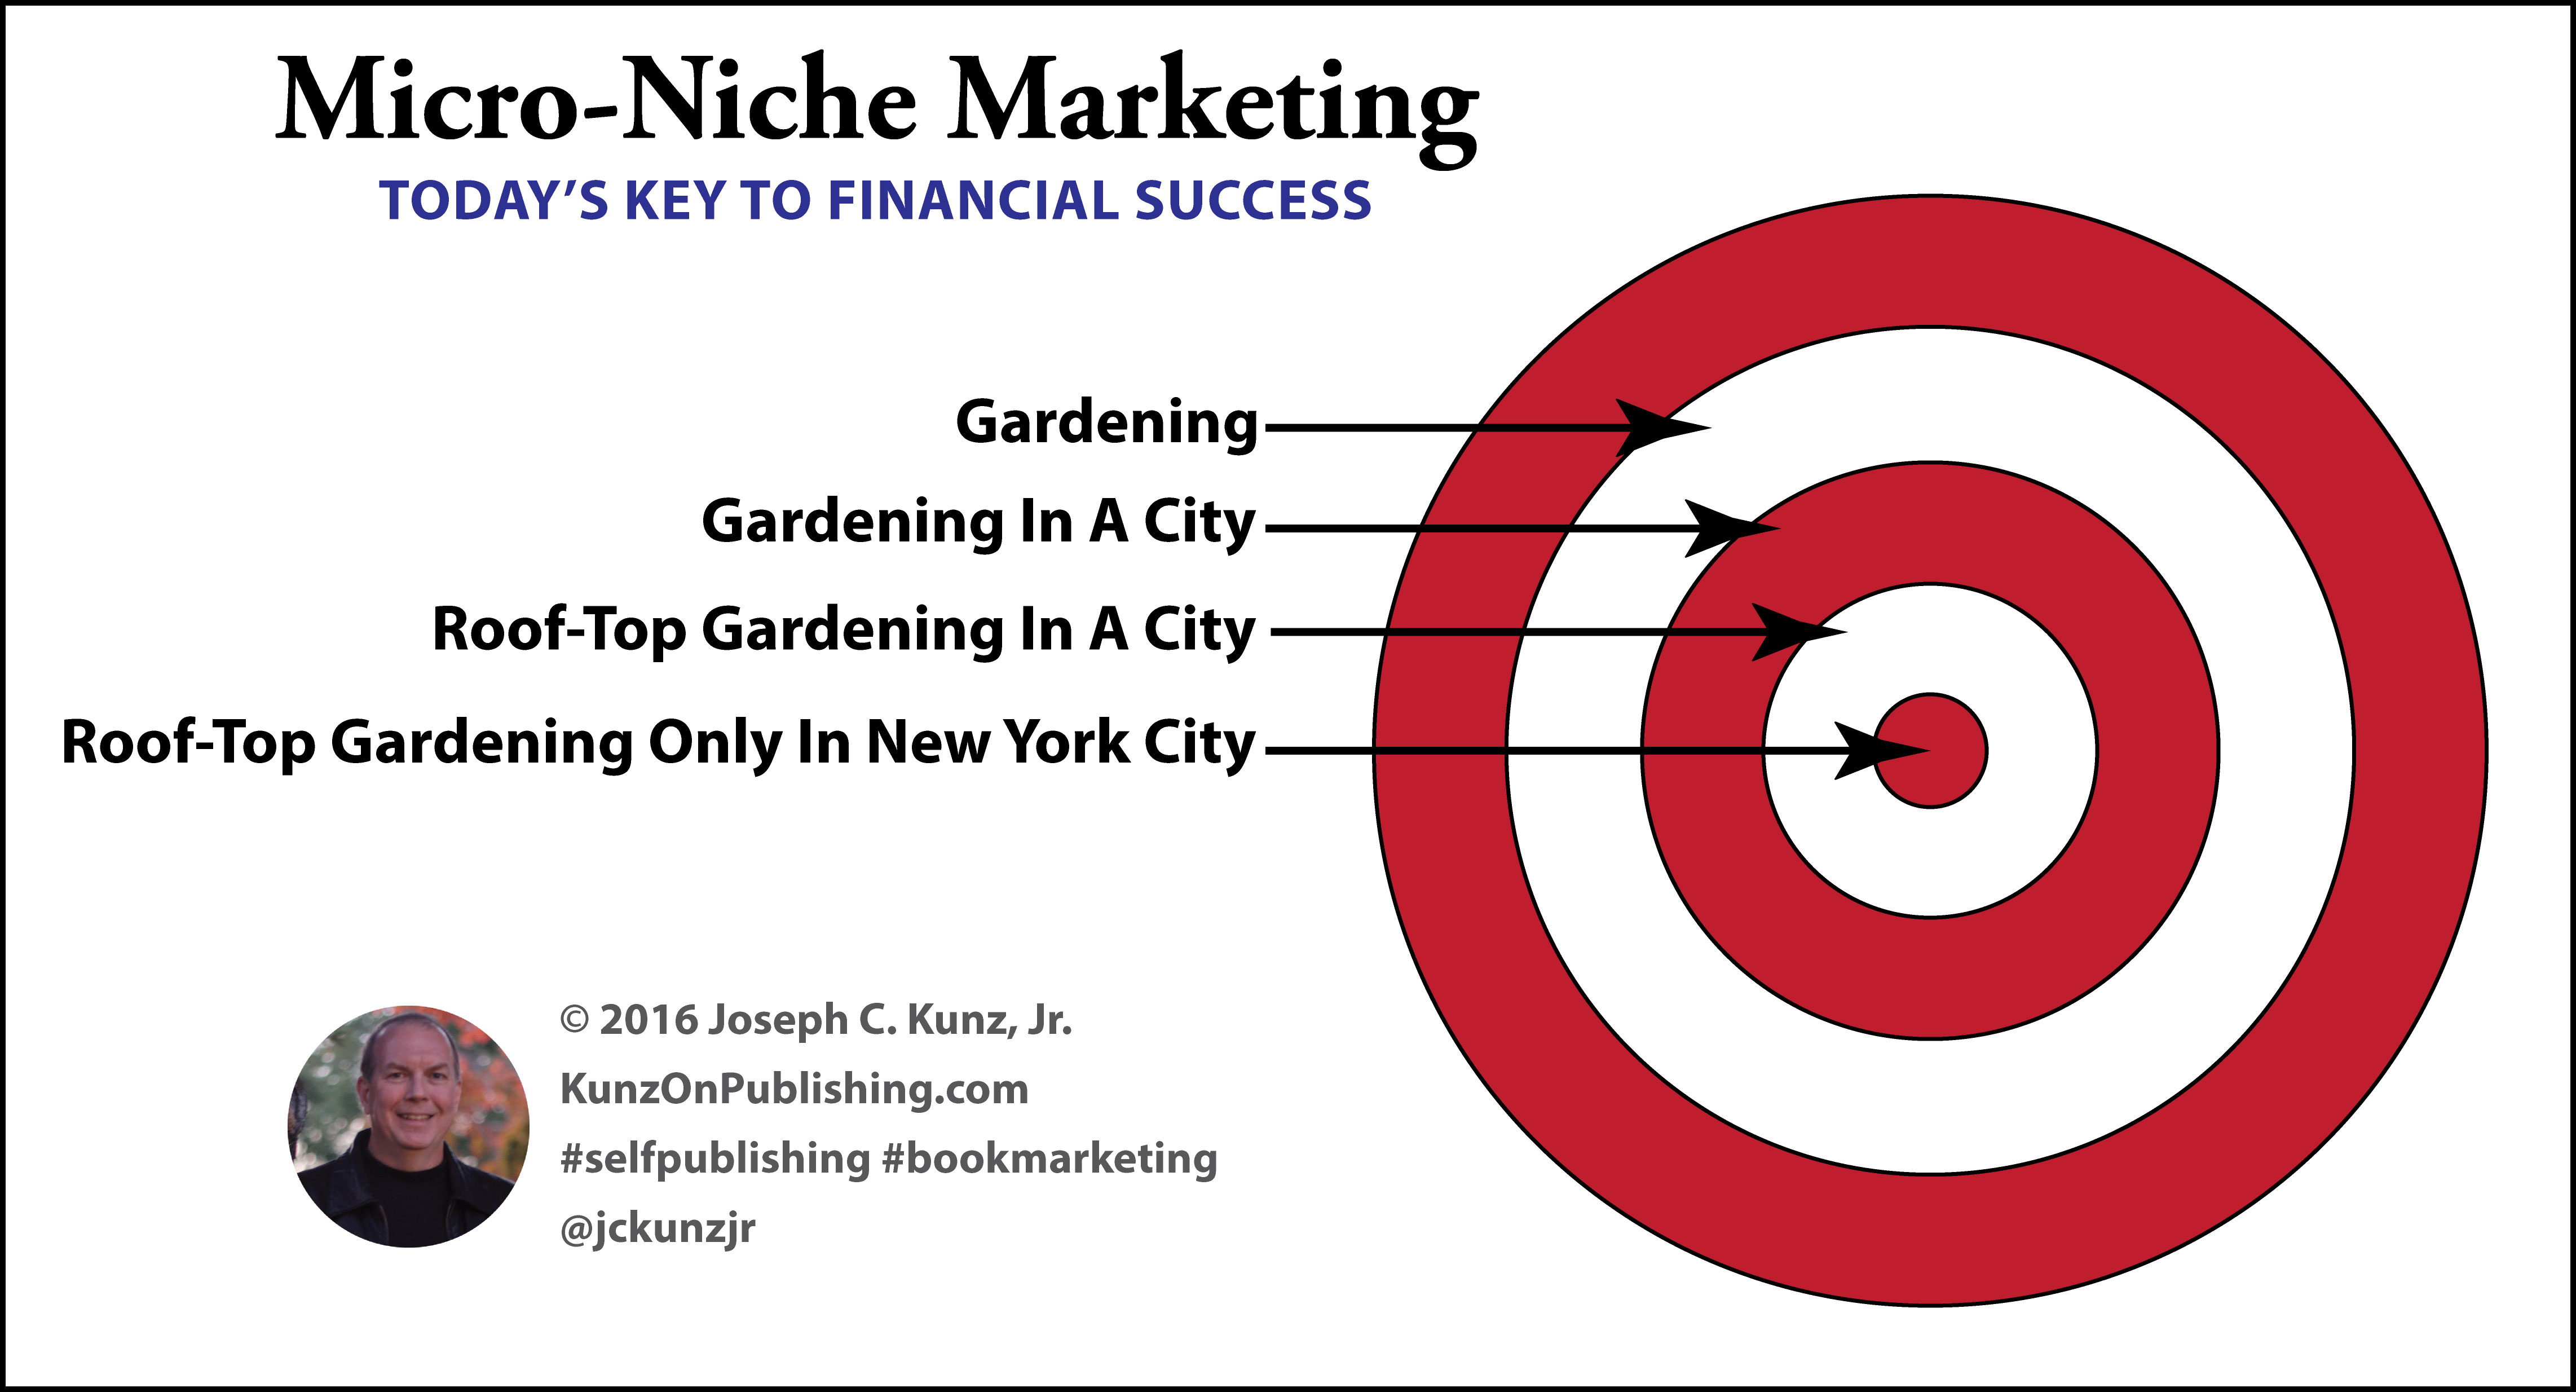 Micro-Niche Marketing: Today's Key To Financial Success (Infographic)